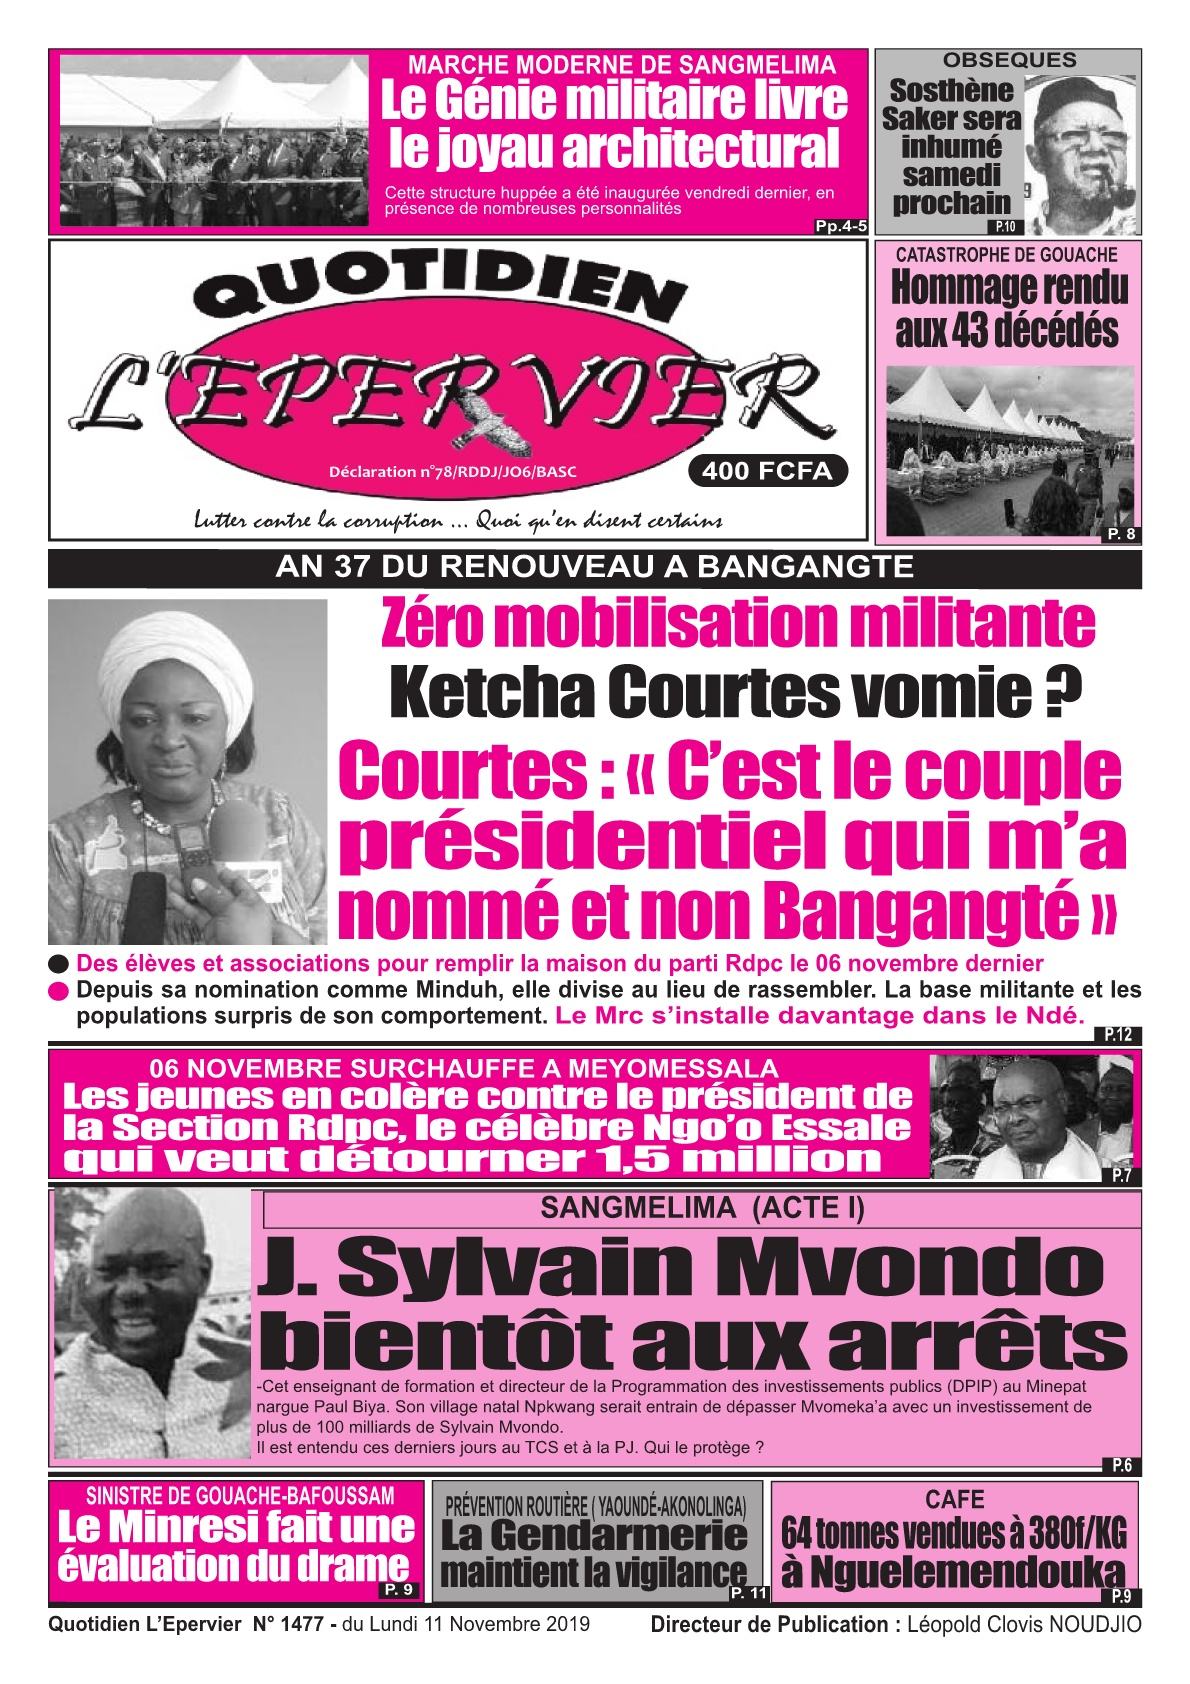 L'Epervier - 11/11/2019